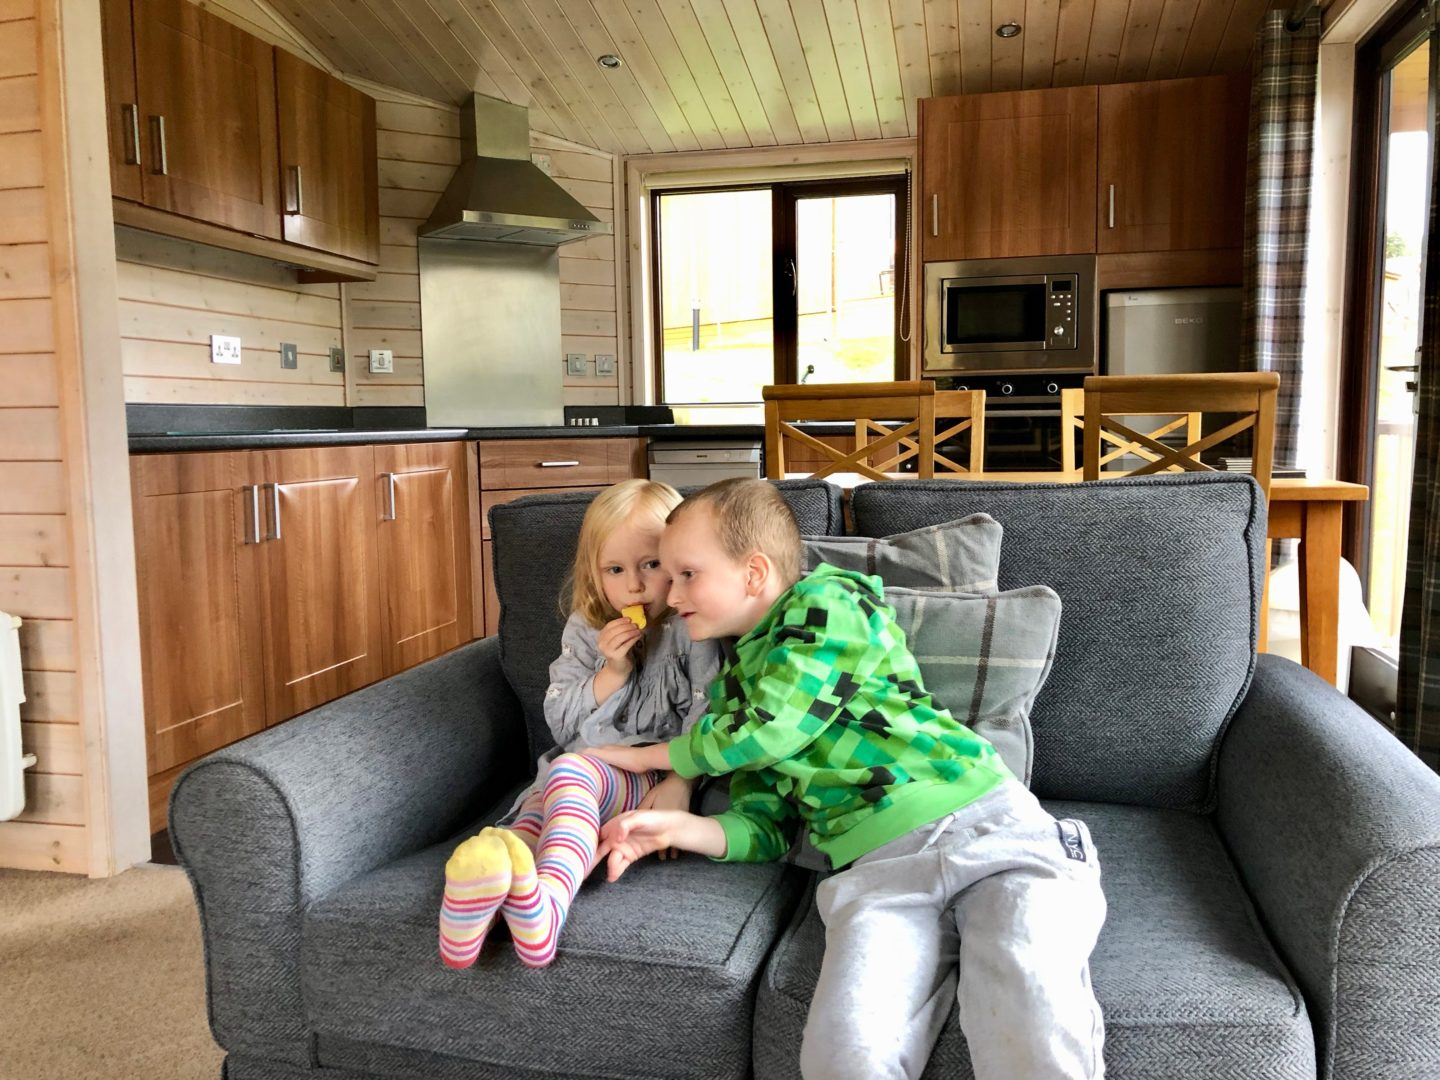 AD: Landal Sandybrook Peak District family review - a relaxing autumnal long weekend break. The kids getting acquainted with the classic Vogue Lodge.